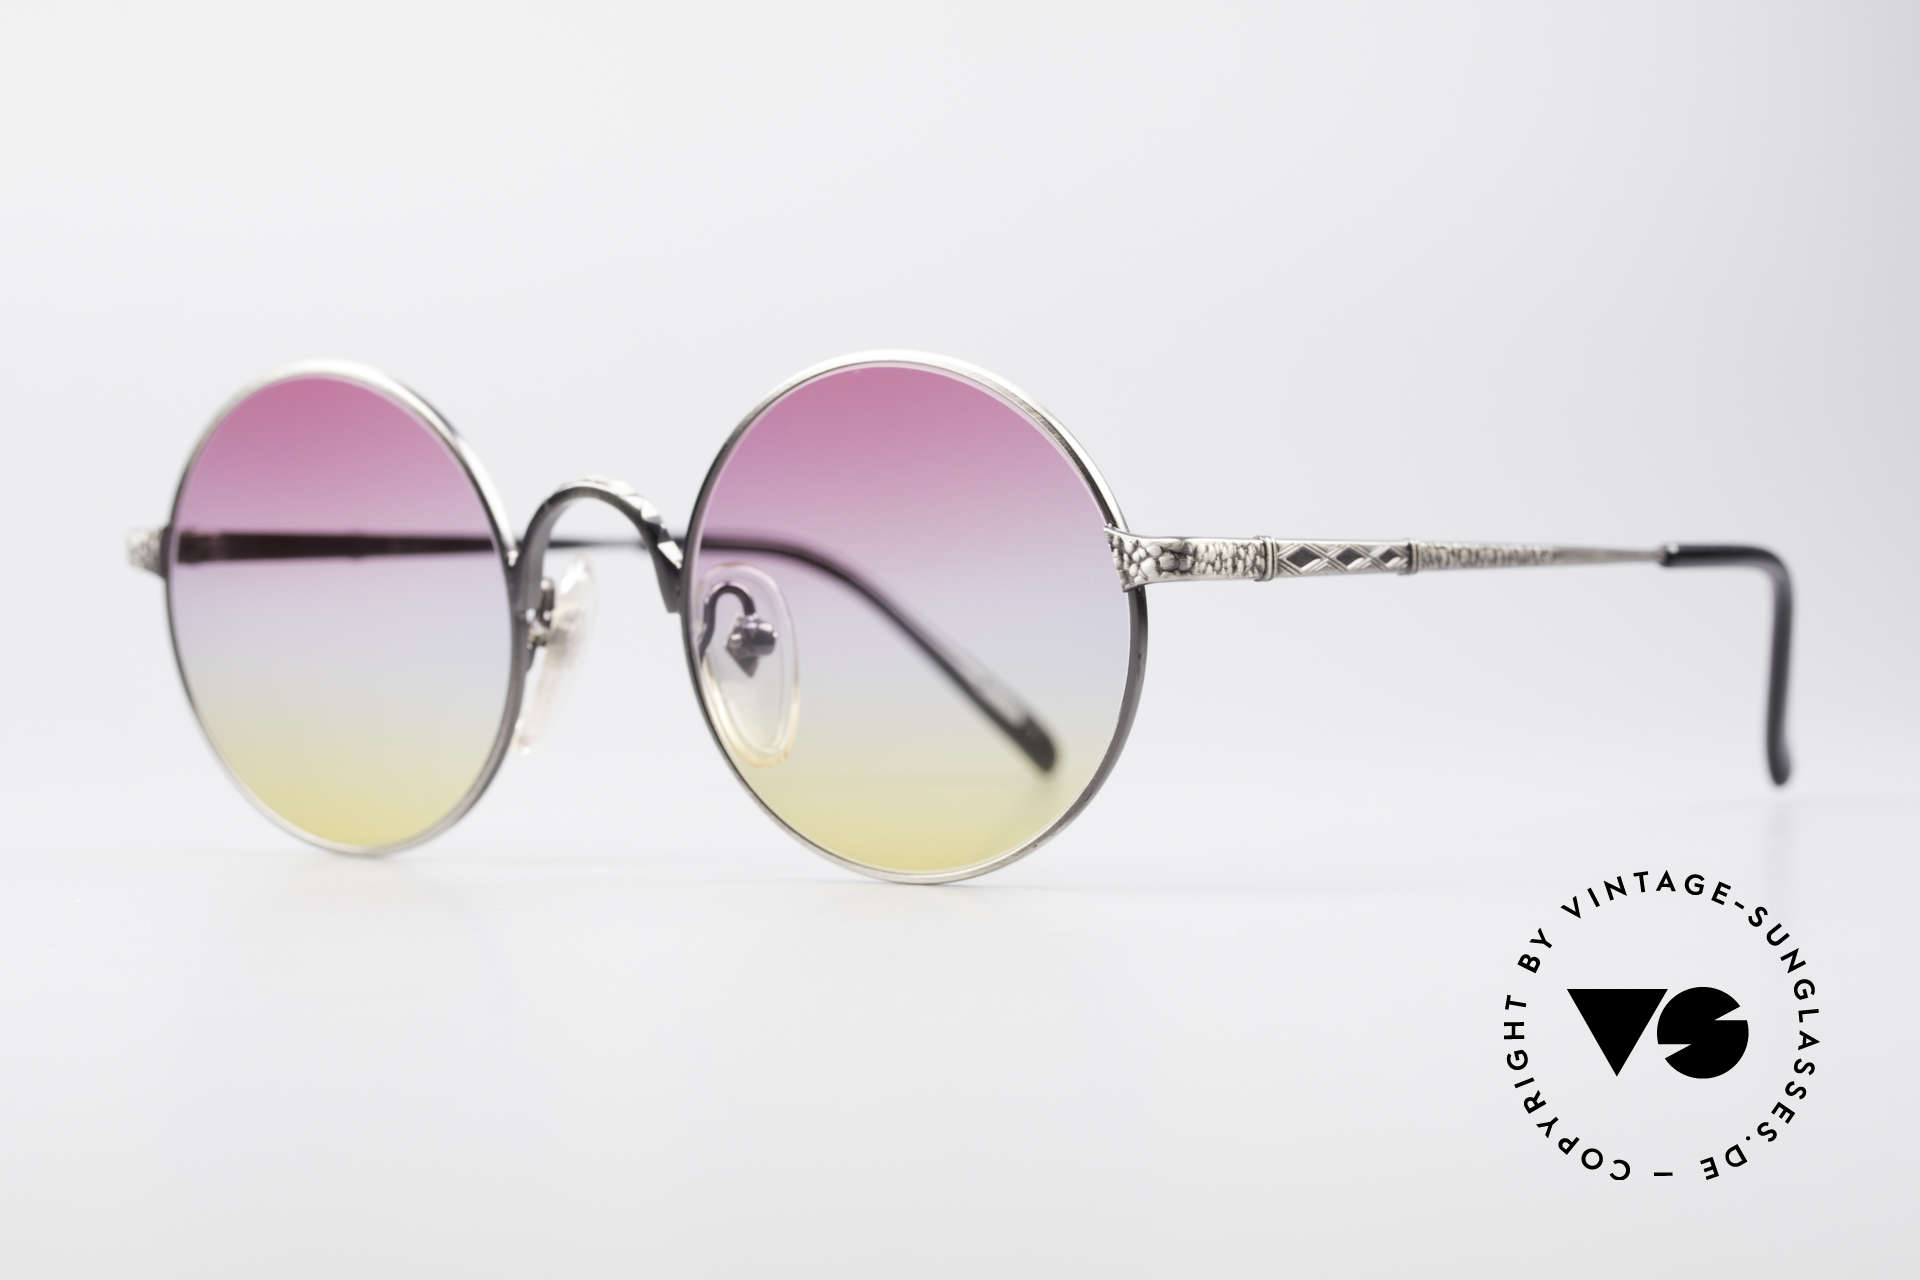 Jean Paul Gaultier 55-9671 Round Designer Sunglasses, 'smoke silver' finish and tricolored sun lenses, Made for Men and Women